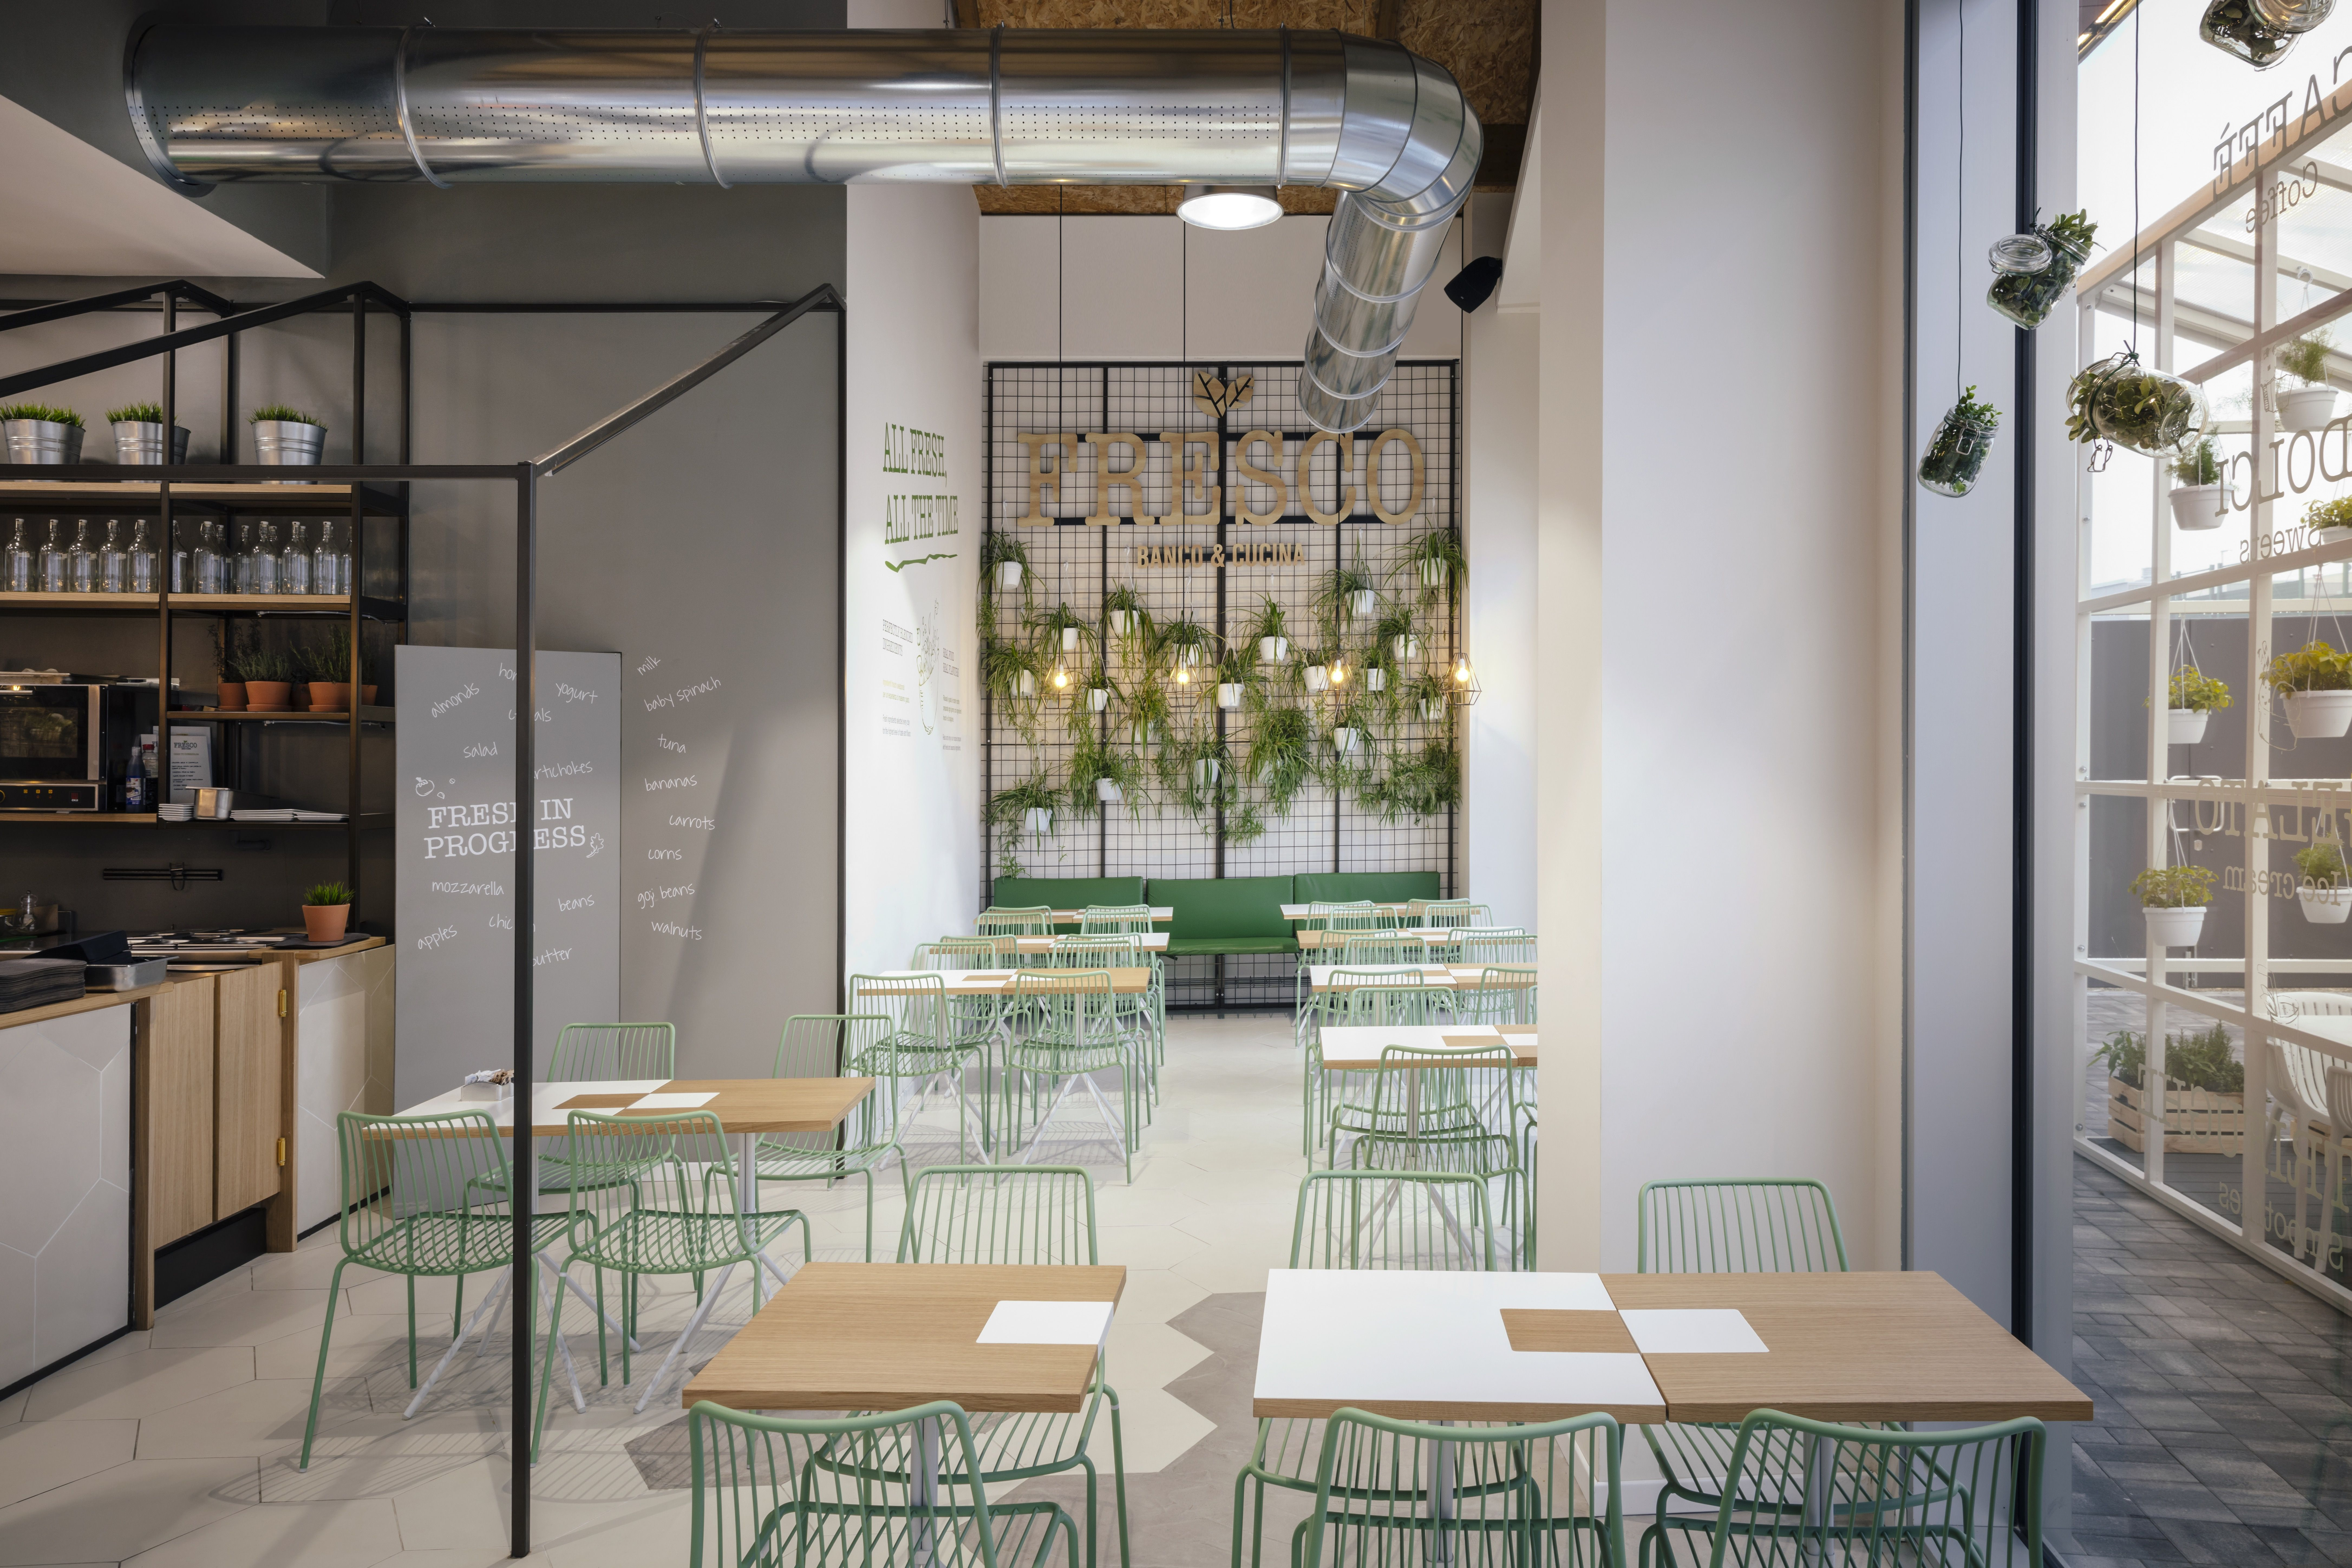 Nolita chair for FRESCO banco & cucina The project starts from the idea of the